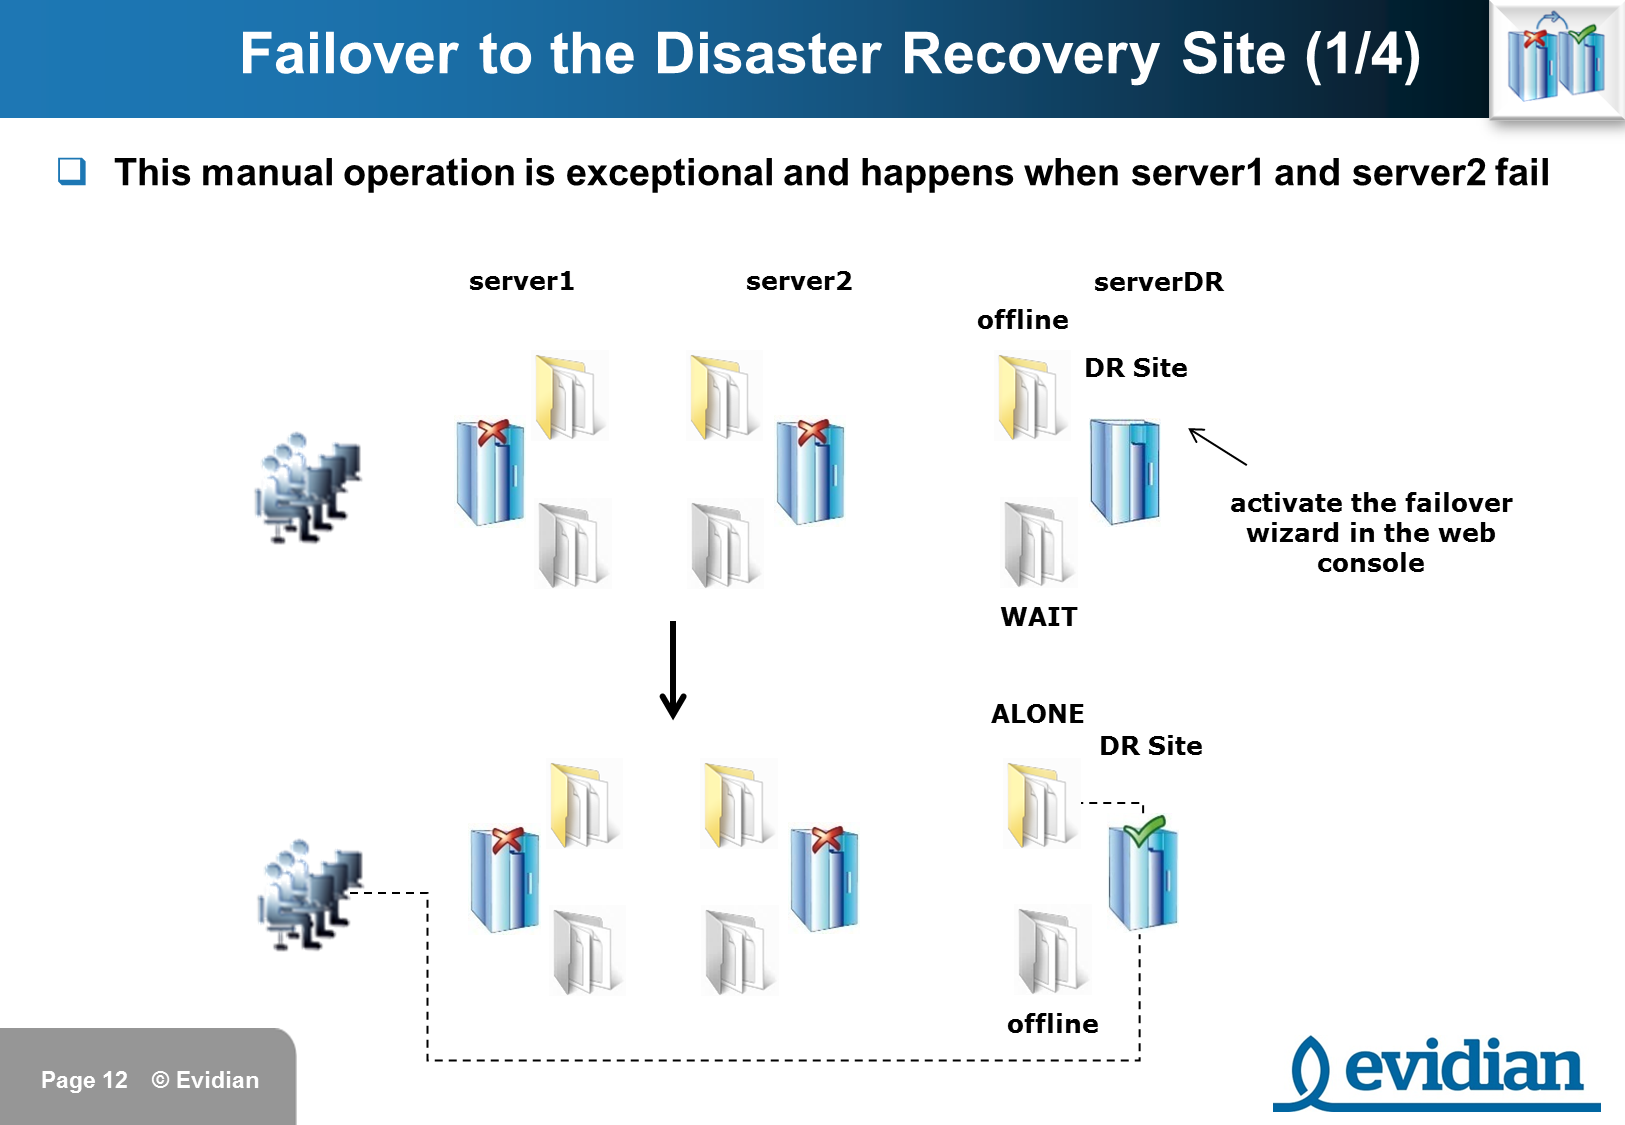 Evidian SafeKit Training - 3 Nodes Replication - Slide 12